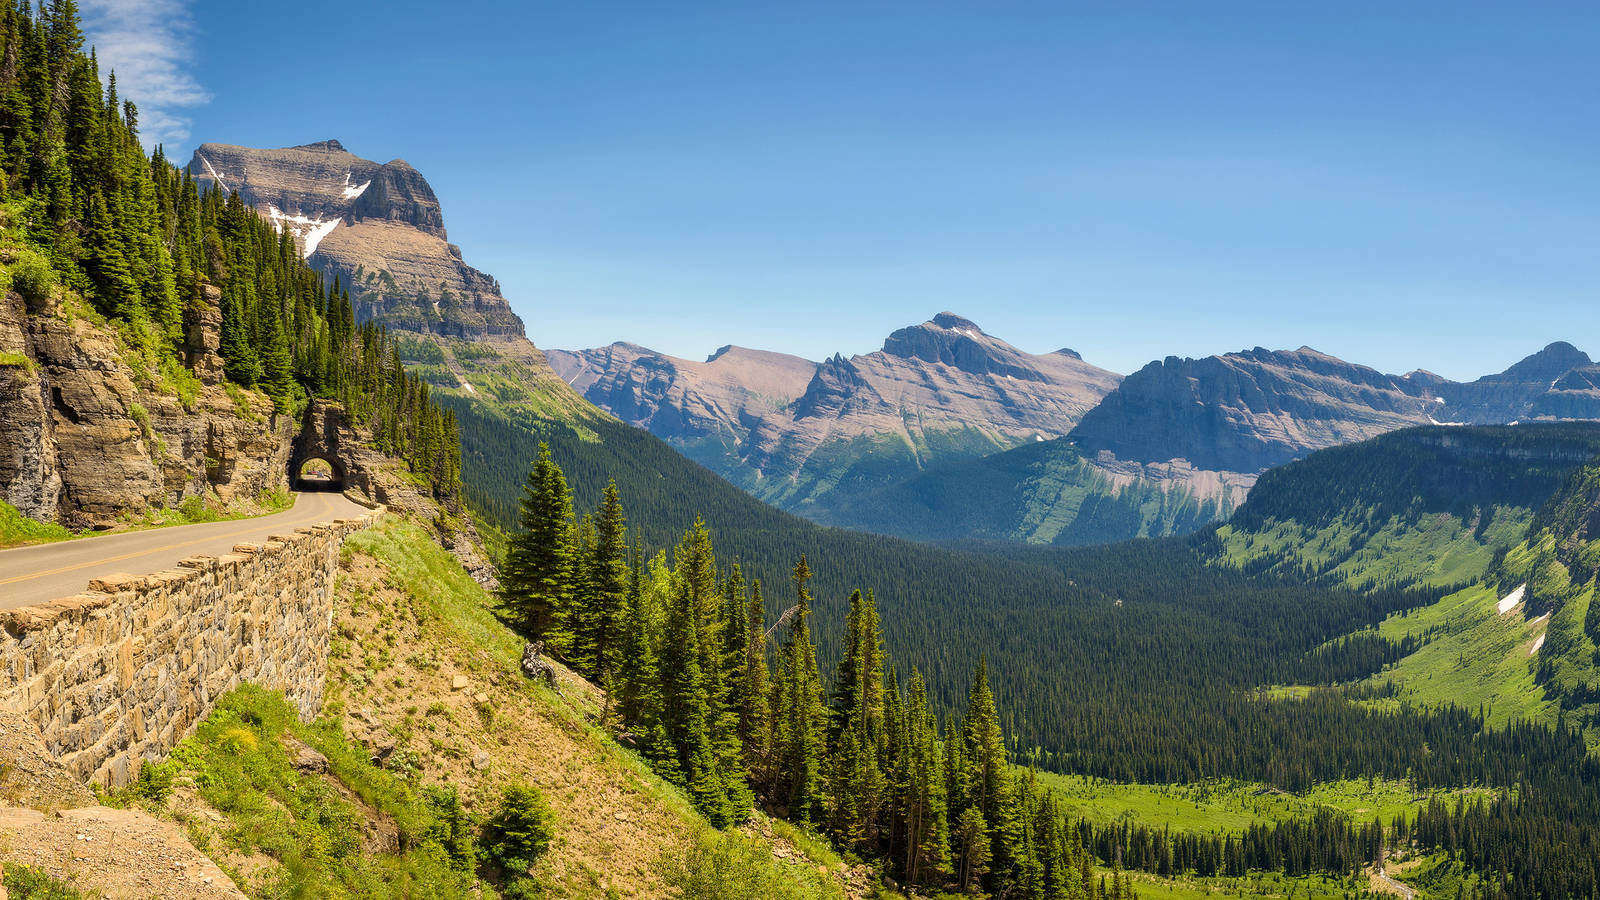 aa7b6fbacb9 10 Scenic National Park Drives · National Parks Conservation Association